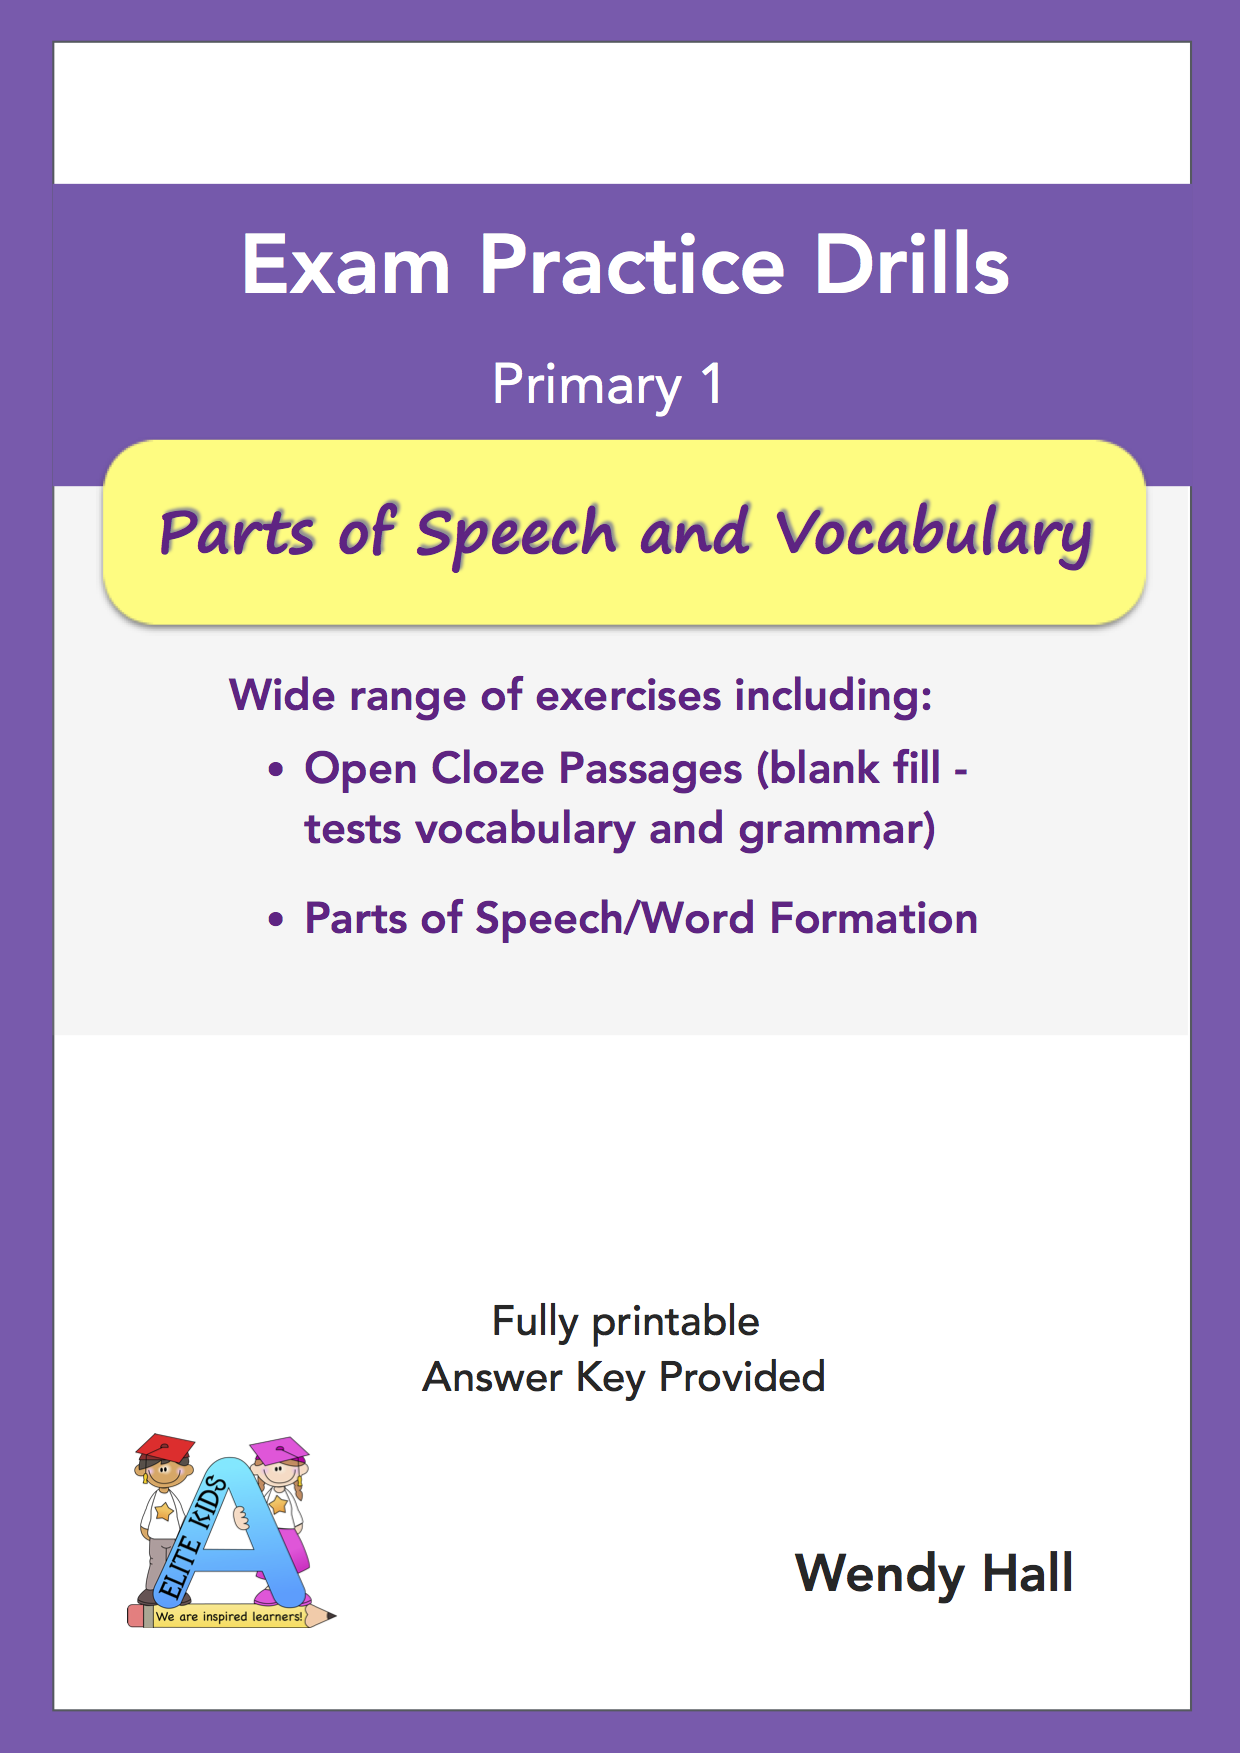 Elite Kids | Exam Practice Drills - Part of Speech and Vocabulary